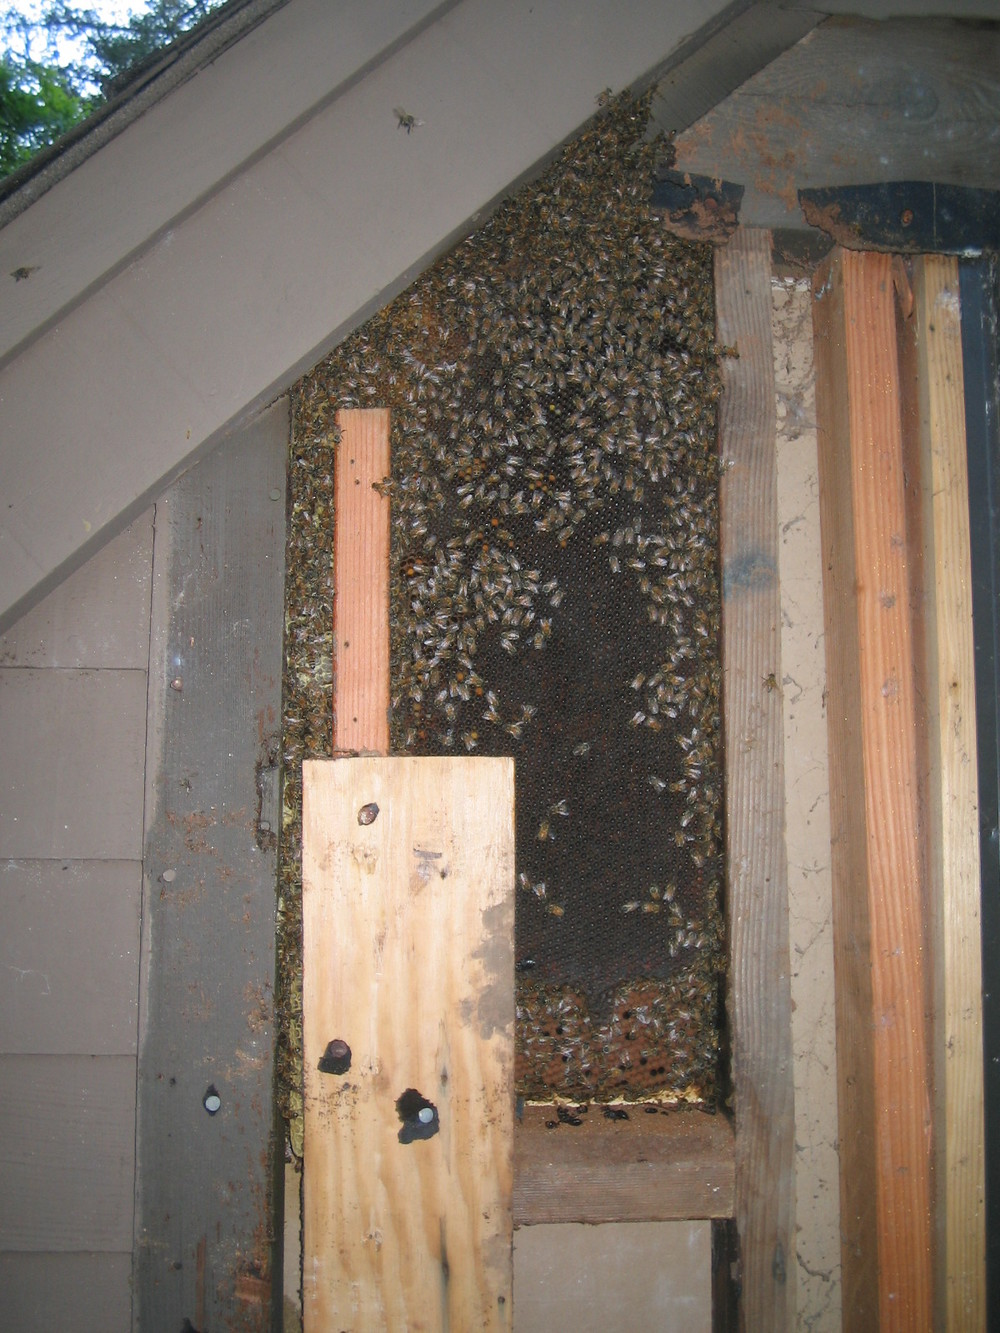 Hive in Forestville